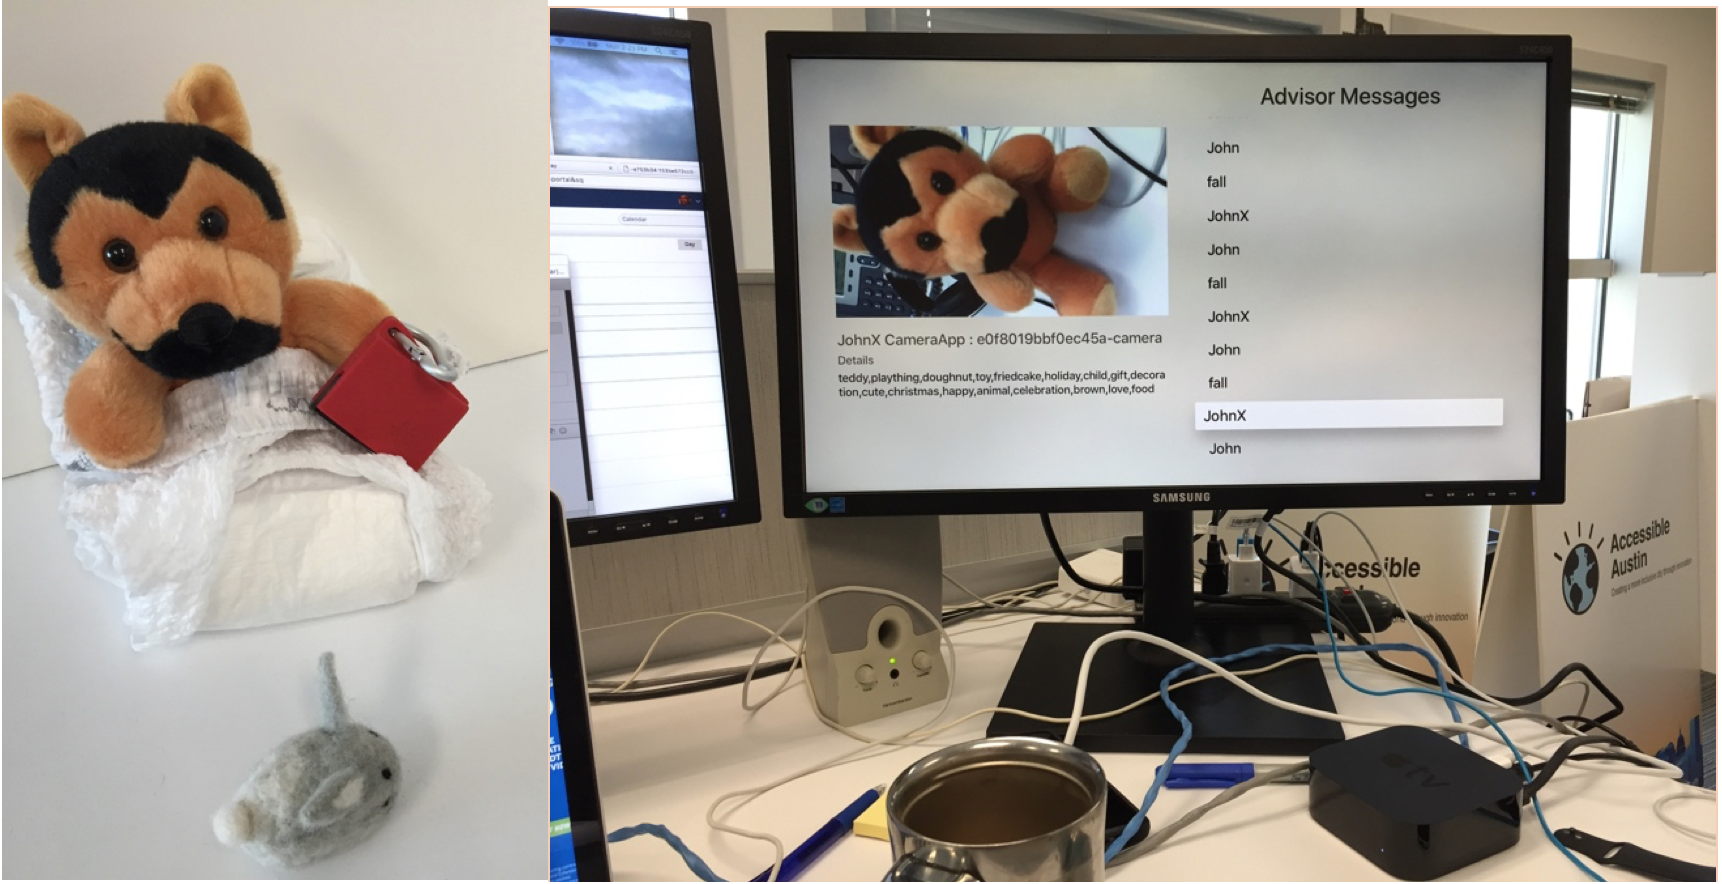 There are two images. On the left is a wolf stuffed animal wearing a diaper and an accelerometer. On the right is a computer monitor with a photo of the wolf and a list of everything being monitored.